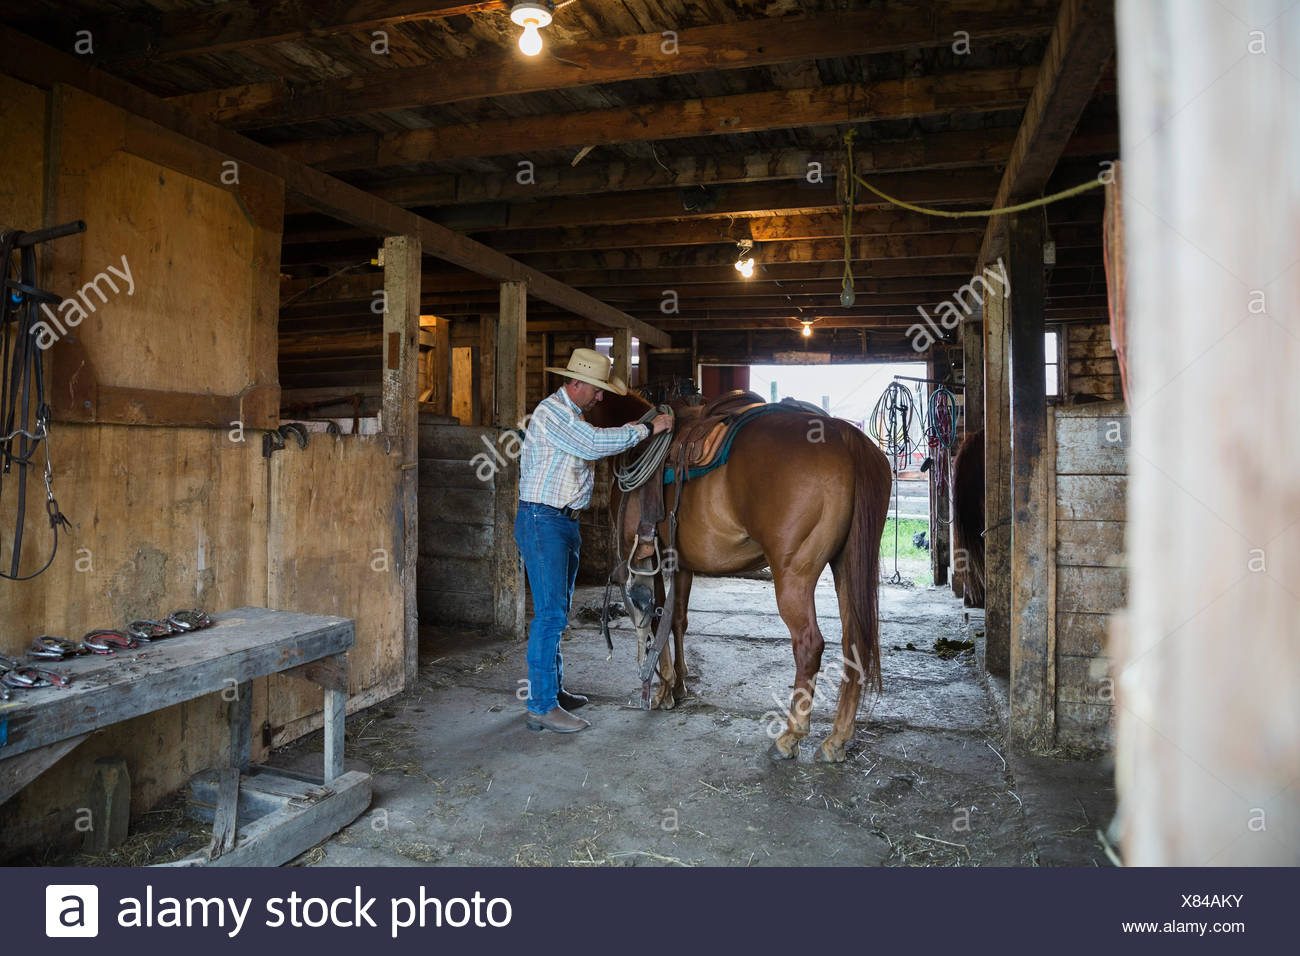 Rancher tacking up horse in barn - Stock Image